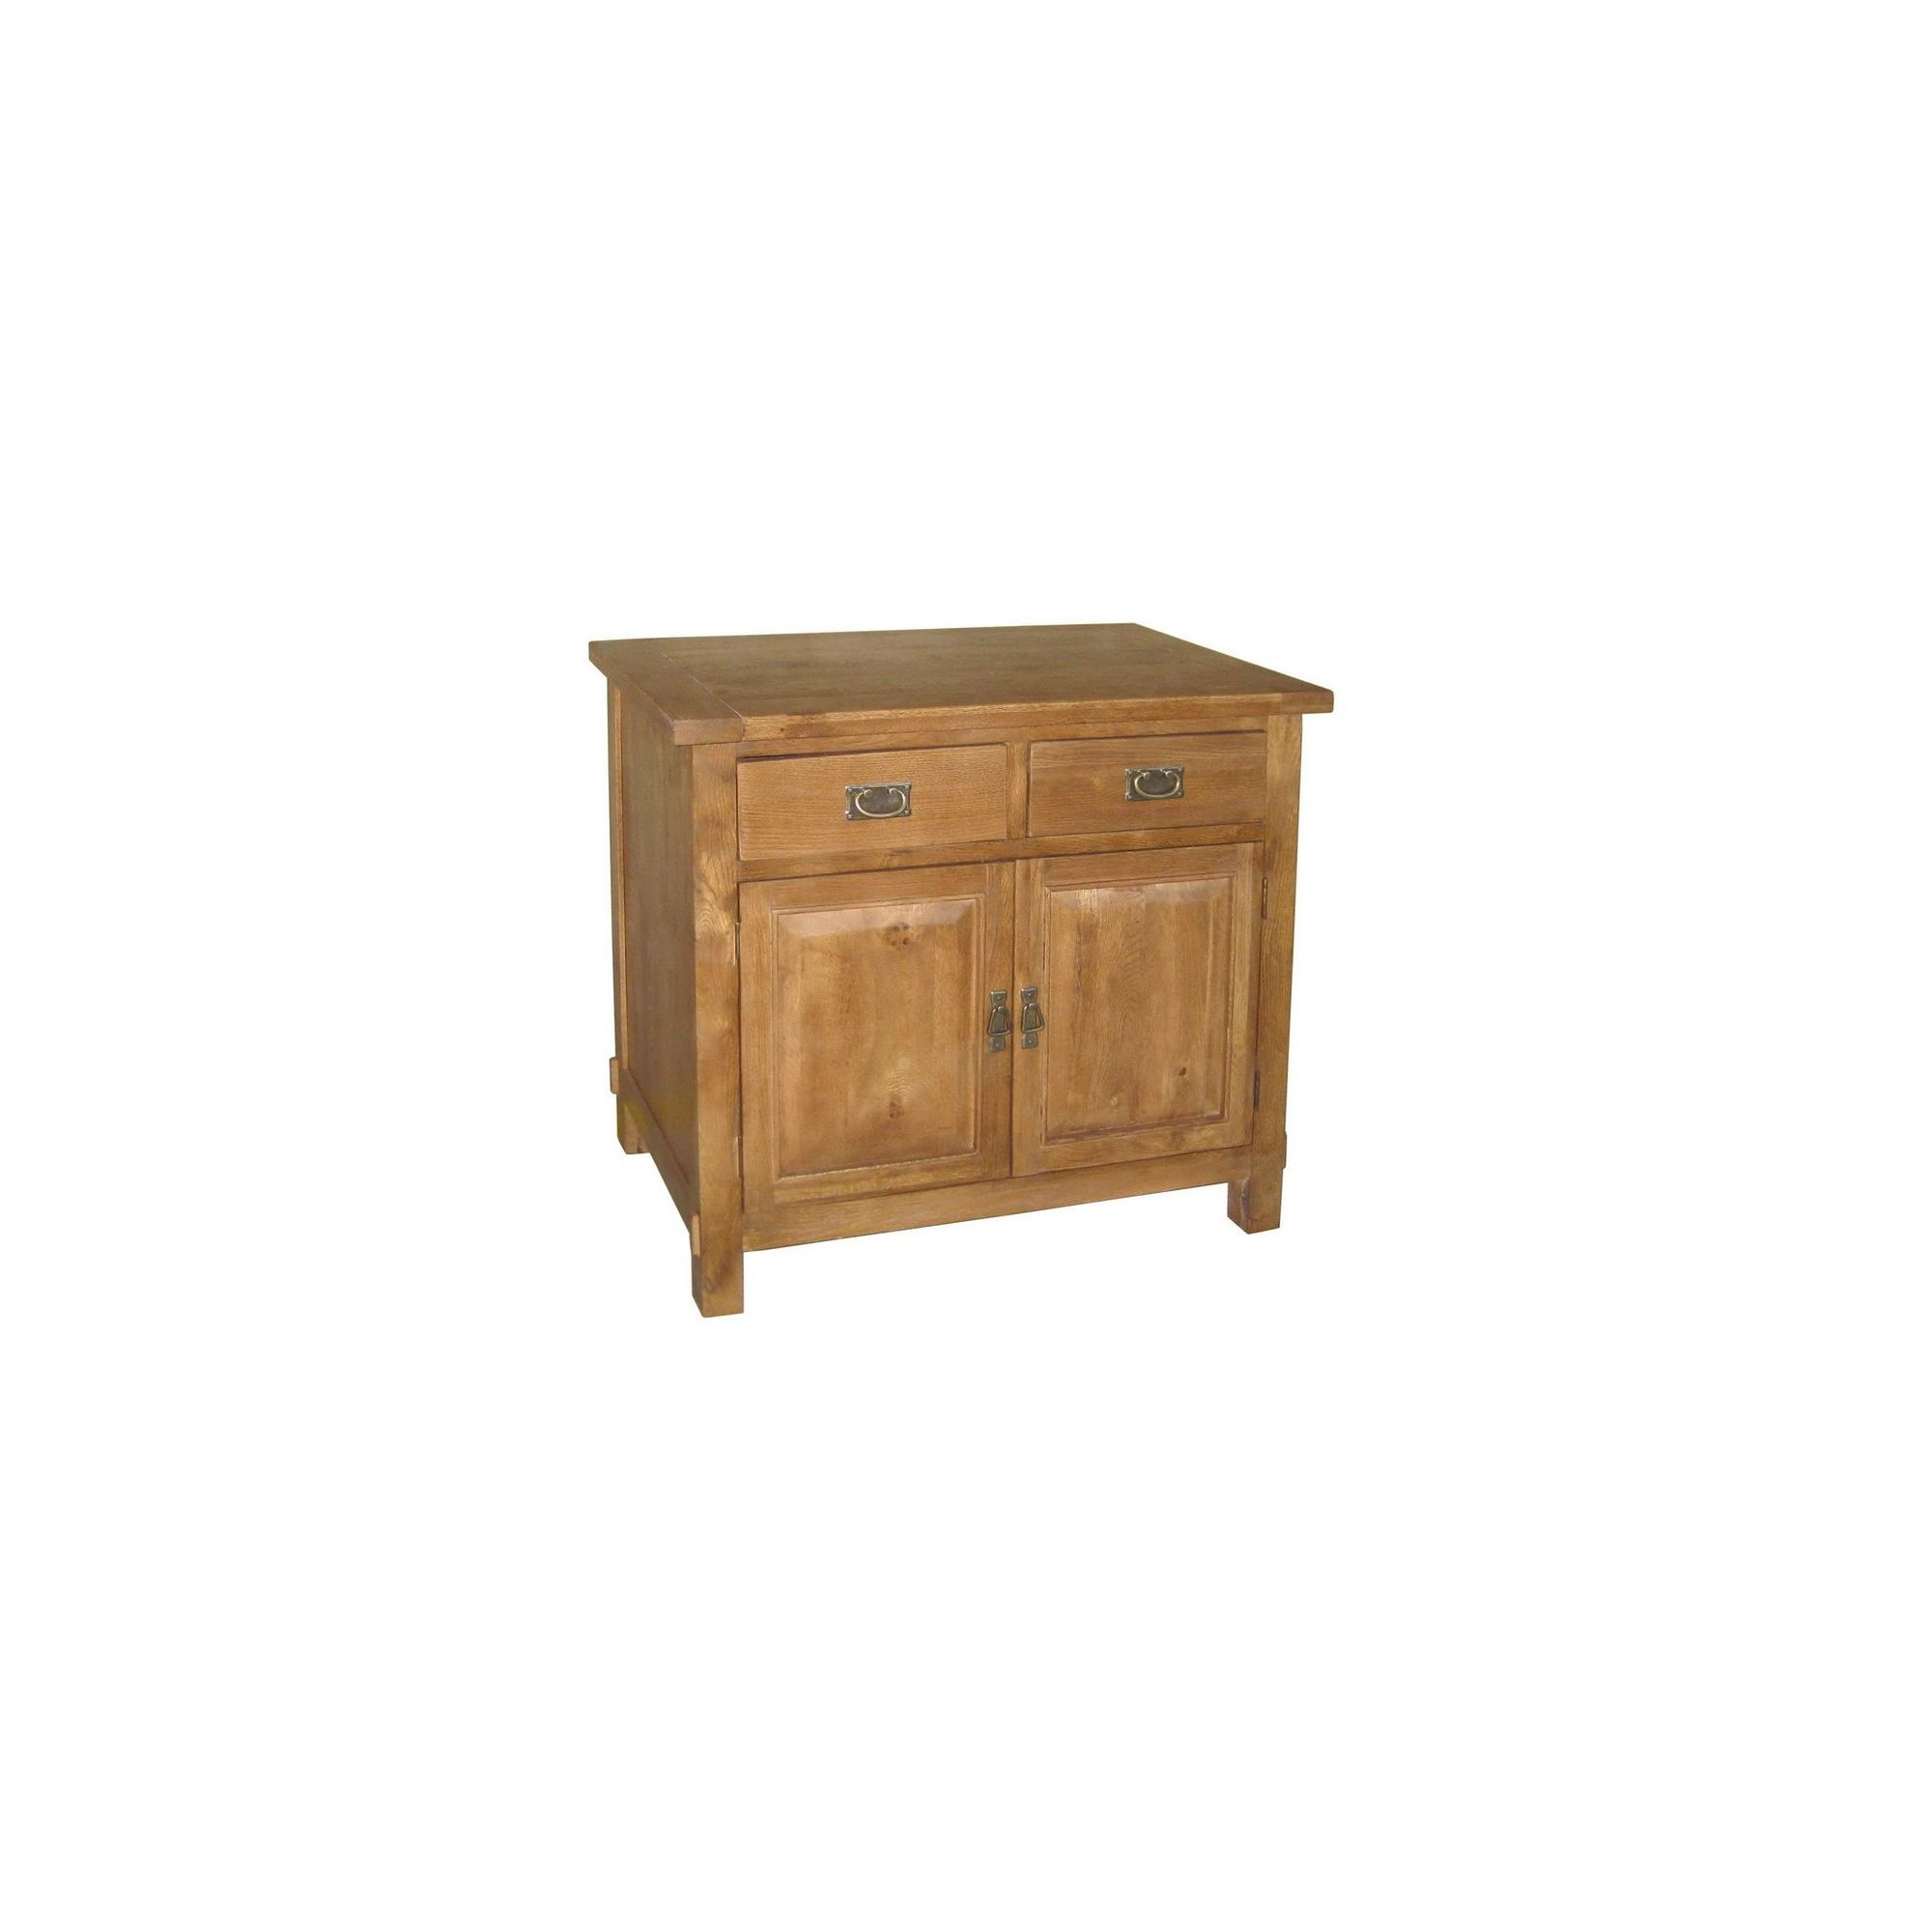 Wiseaction Riviera Sideboard Two Drawers / Two Doors at Tesco Direct